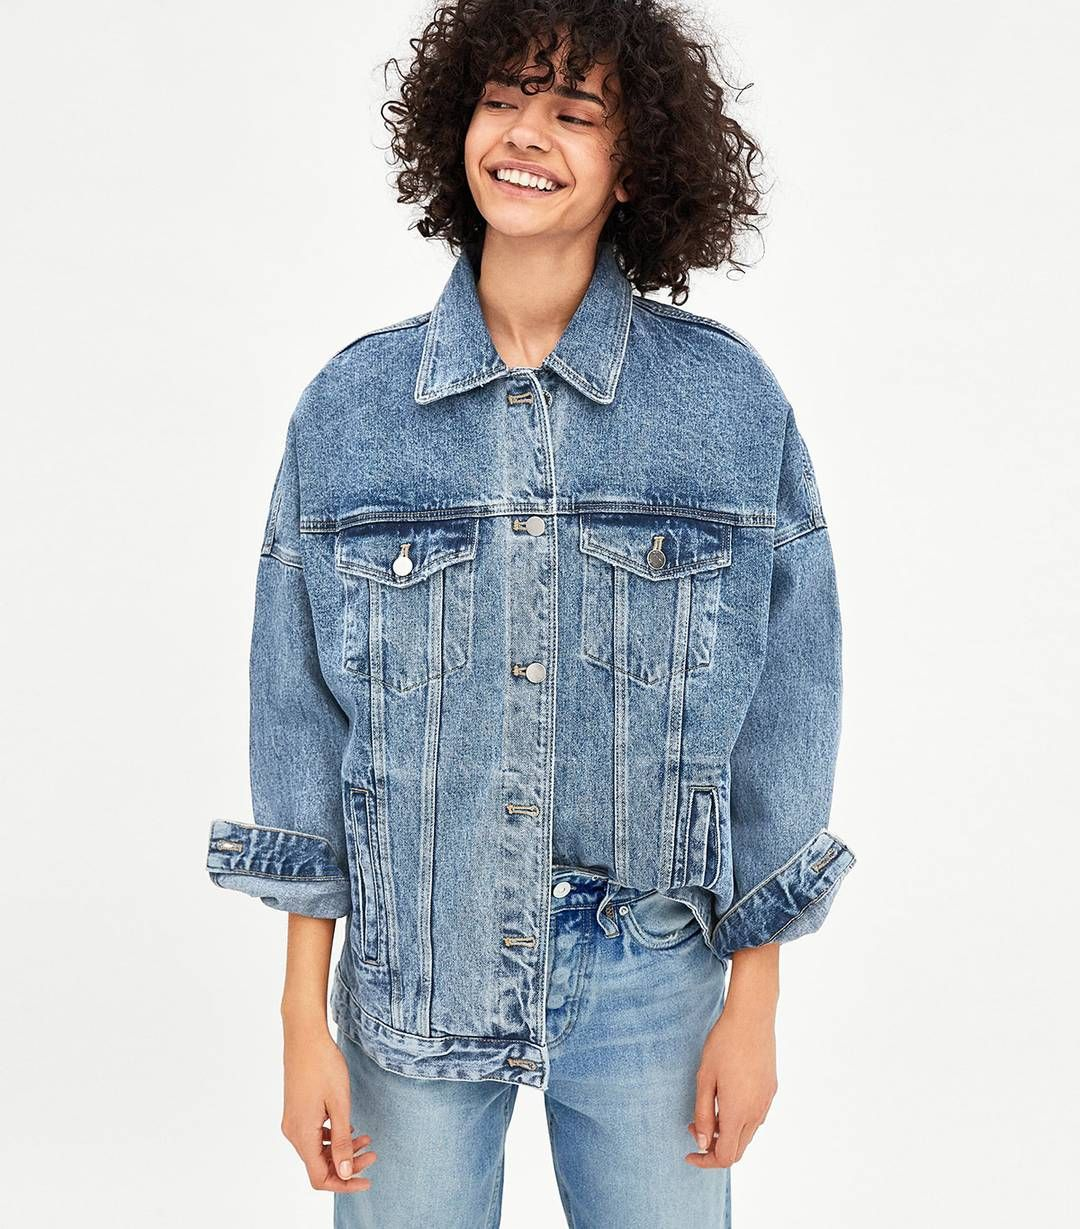 5 Cute Jean Jacket Outfits For Spring In 2021 Jean Jacket Outfits Oversized Denim Jacket Denim Jacket Women [ 1229 x 1080 Pixel ]